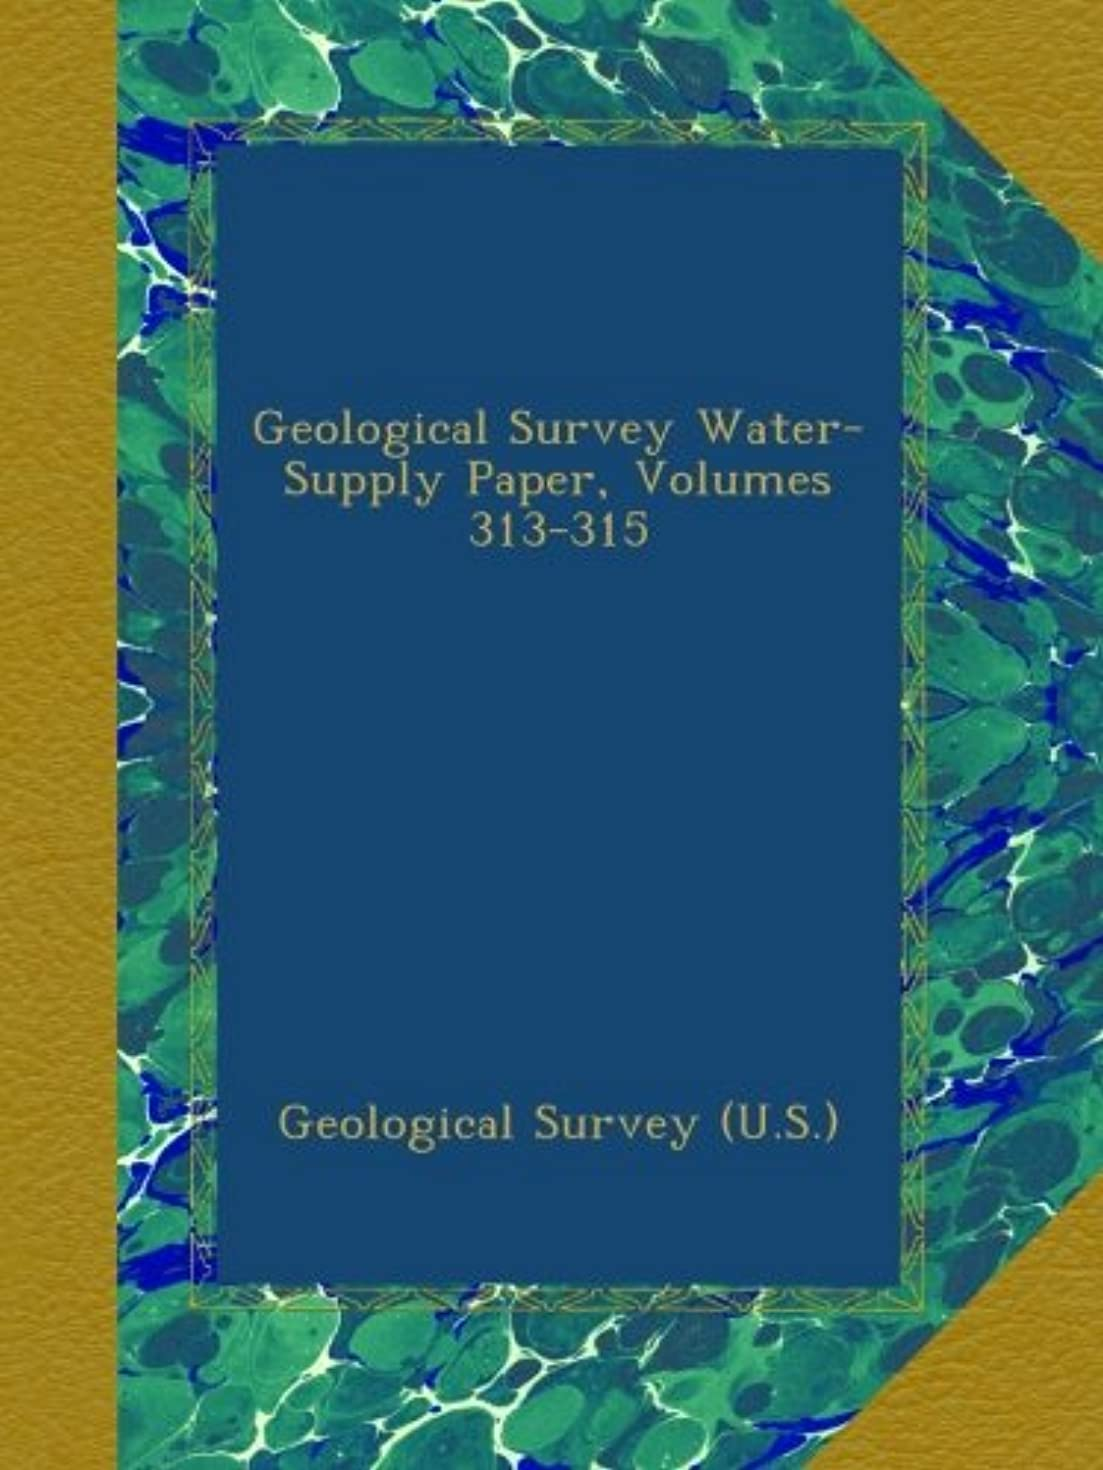 疑い者幸運なことに立ち寄るGeological Survey Water-Supply Paper, Volumes 313-315